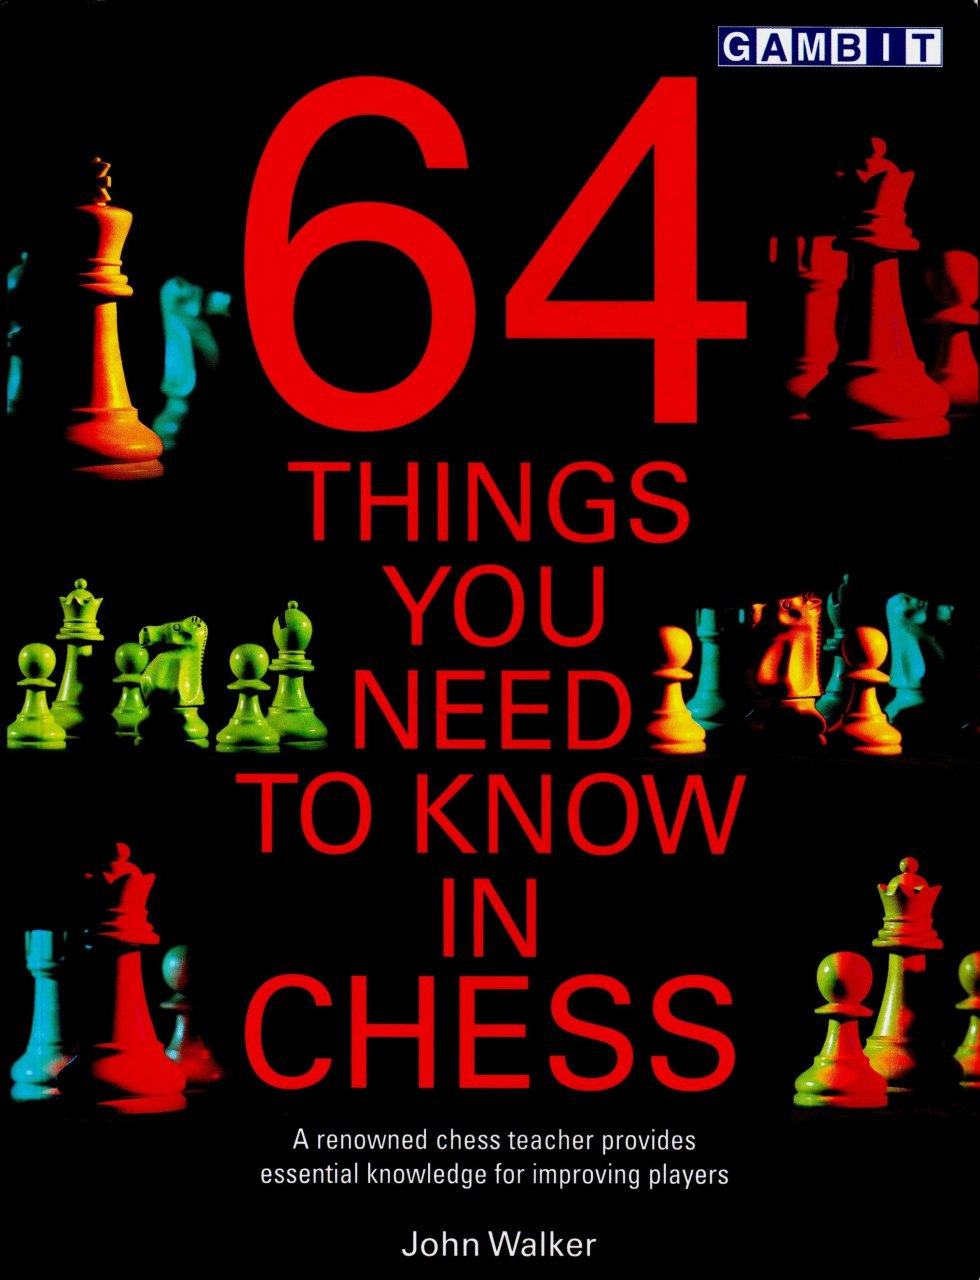 64 Things You Need to Know in Chess  Book by John Walker  Img_2465